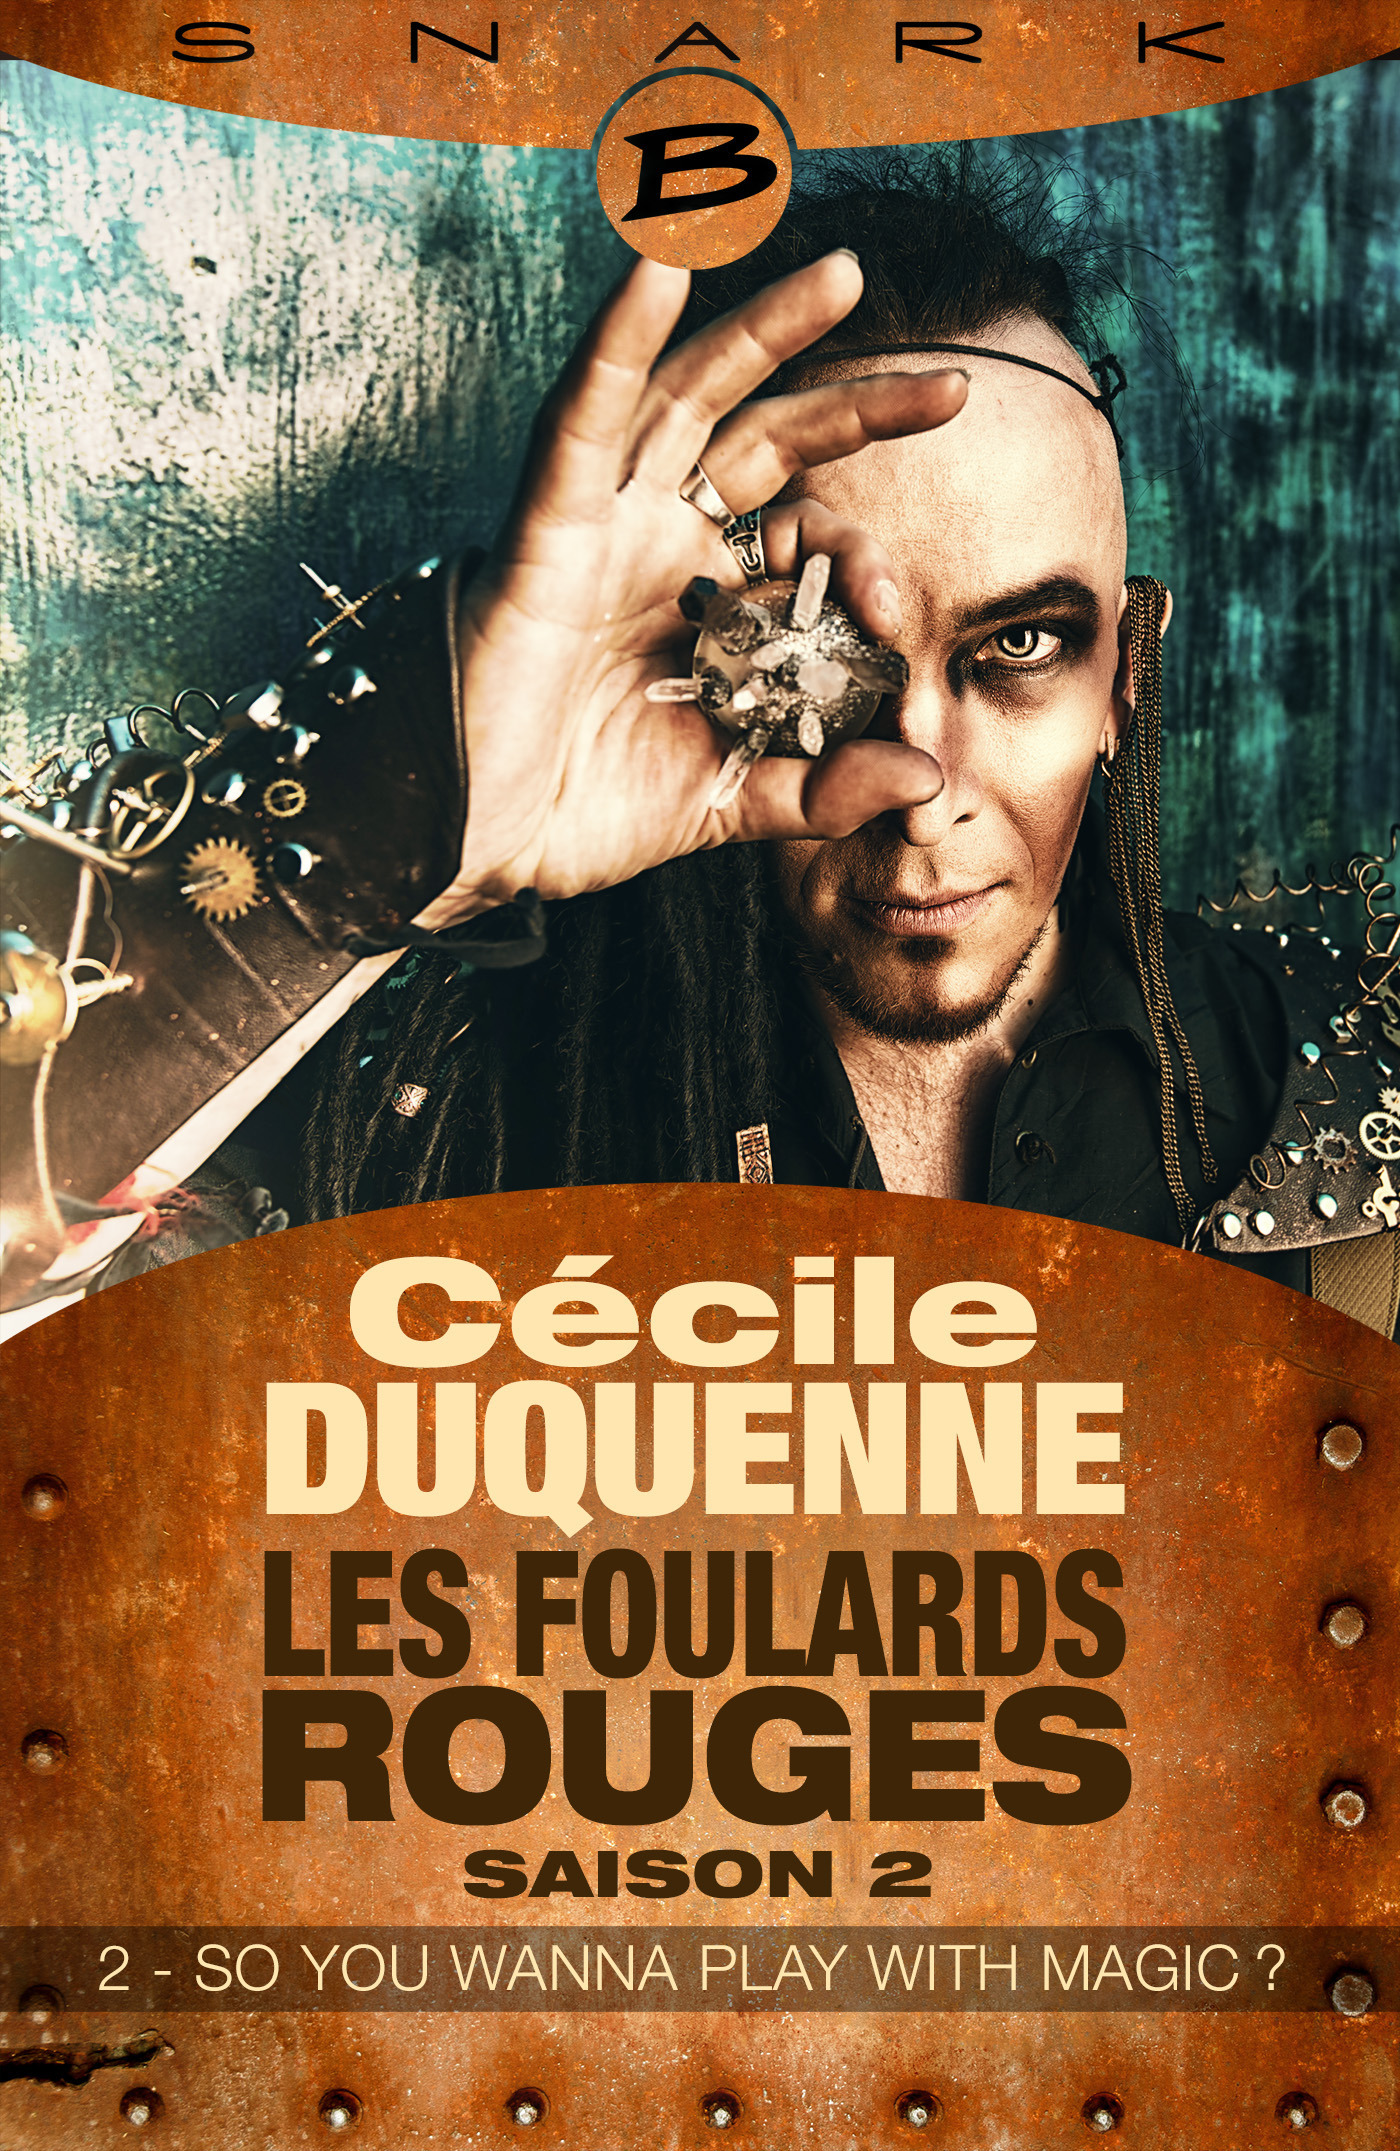 les foulards rouges saison 2 t.2 ; so you wanna play with magic ?